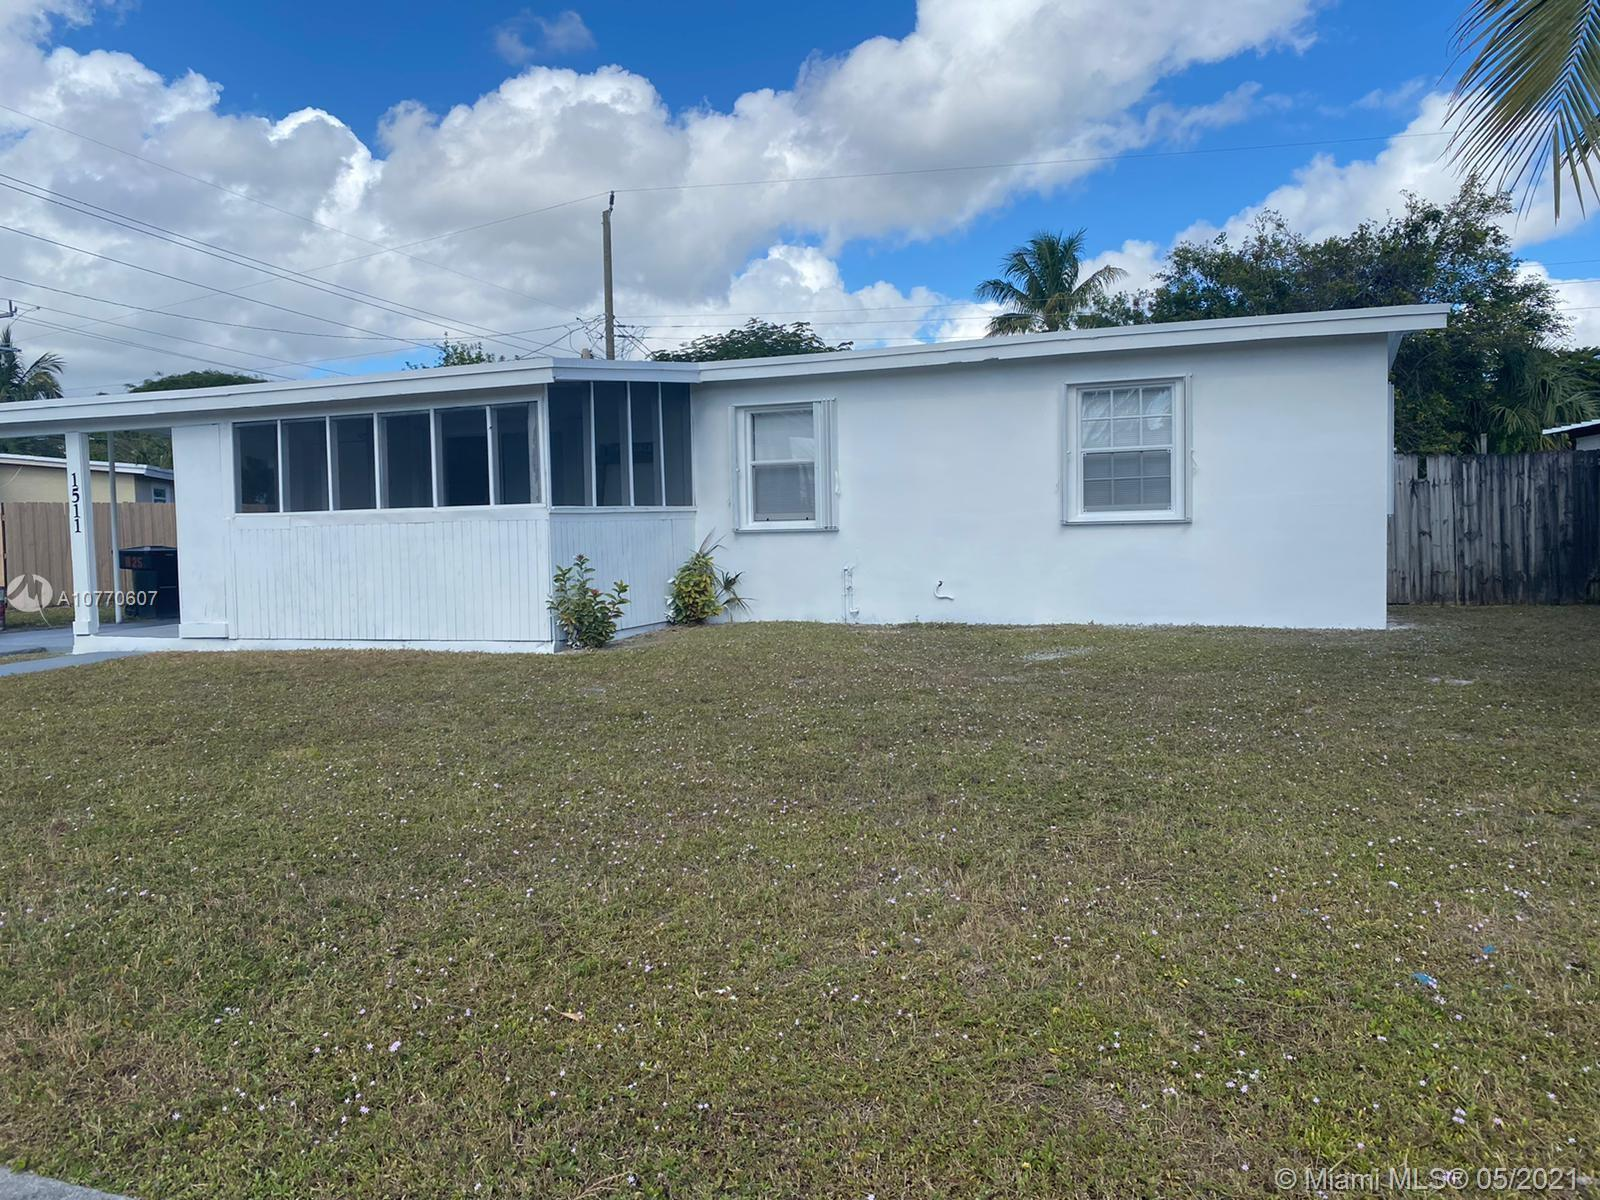 BEAUTIFUL HOME 3 BEDROOM 2 BATHROOM HOME, GREAT OPPORTUNITY RENOVATED PROPERTY!!!! NEW ROOF!!  LOCAT